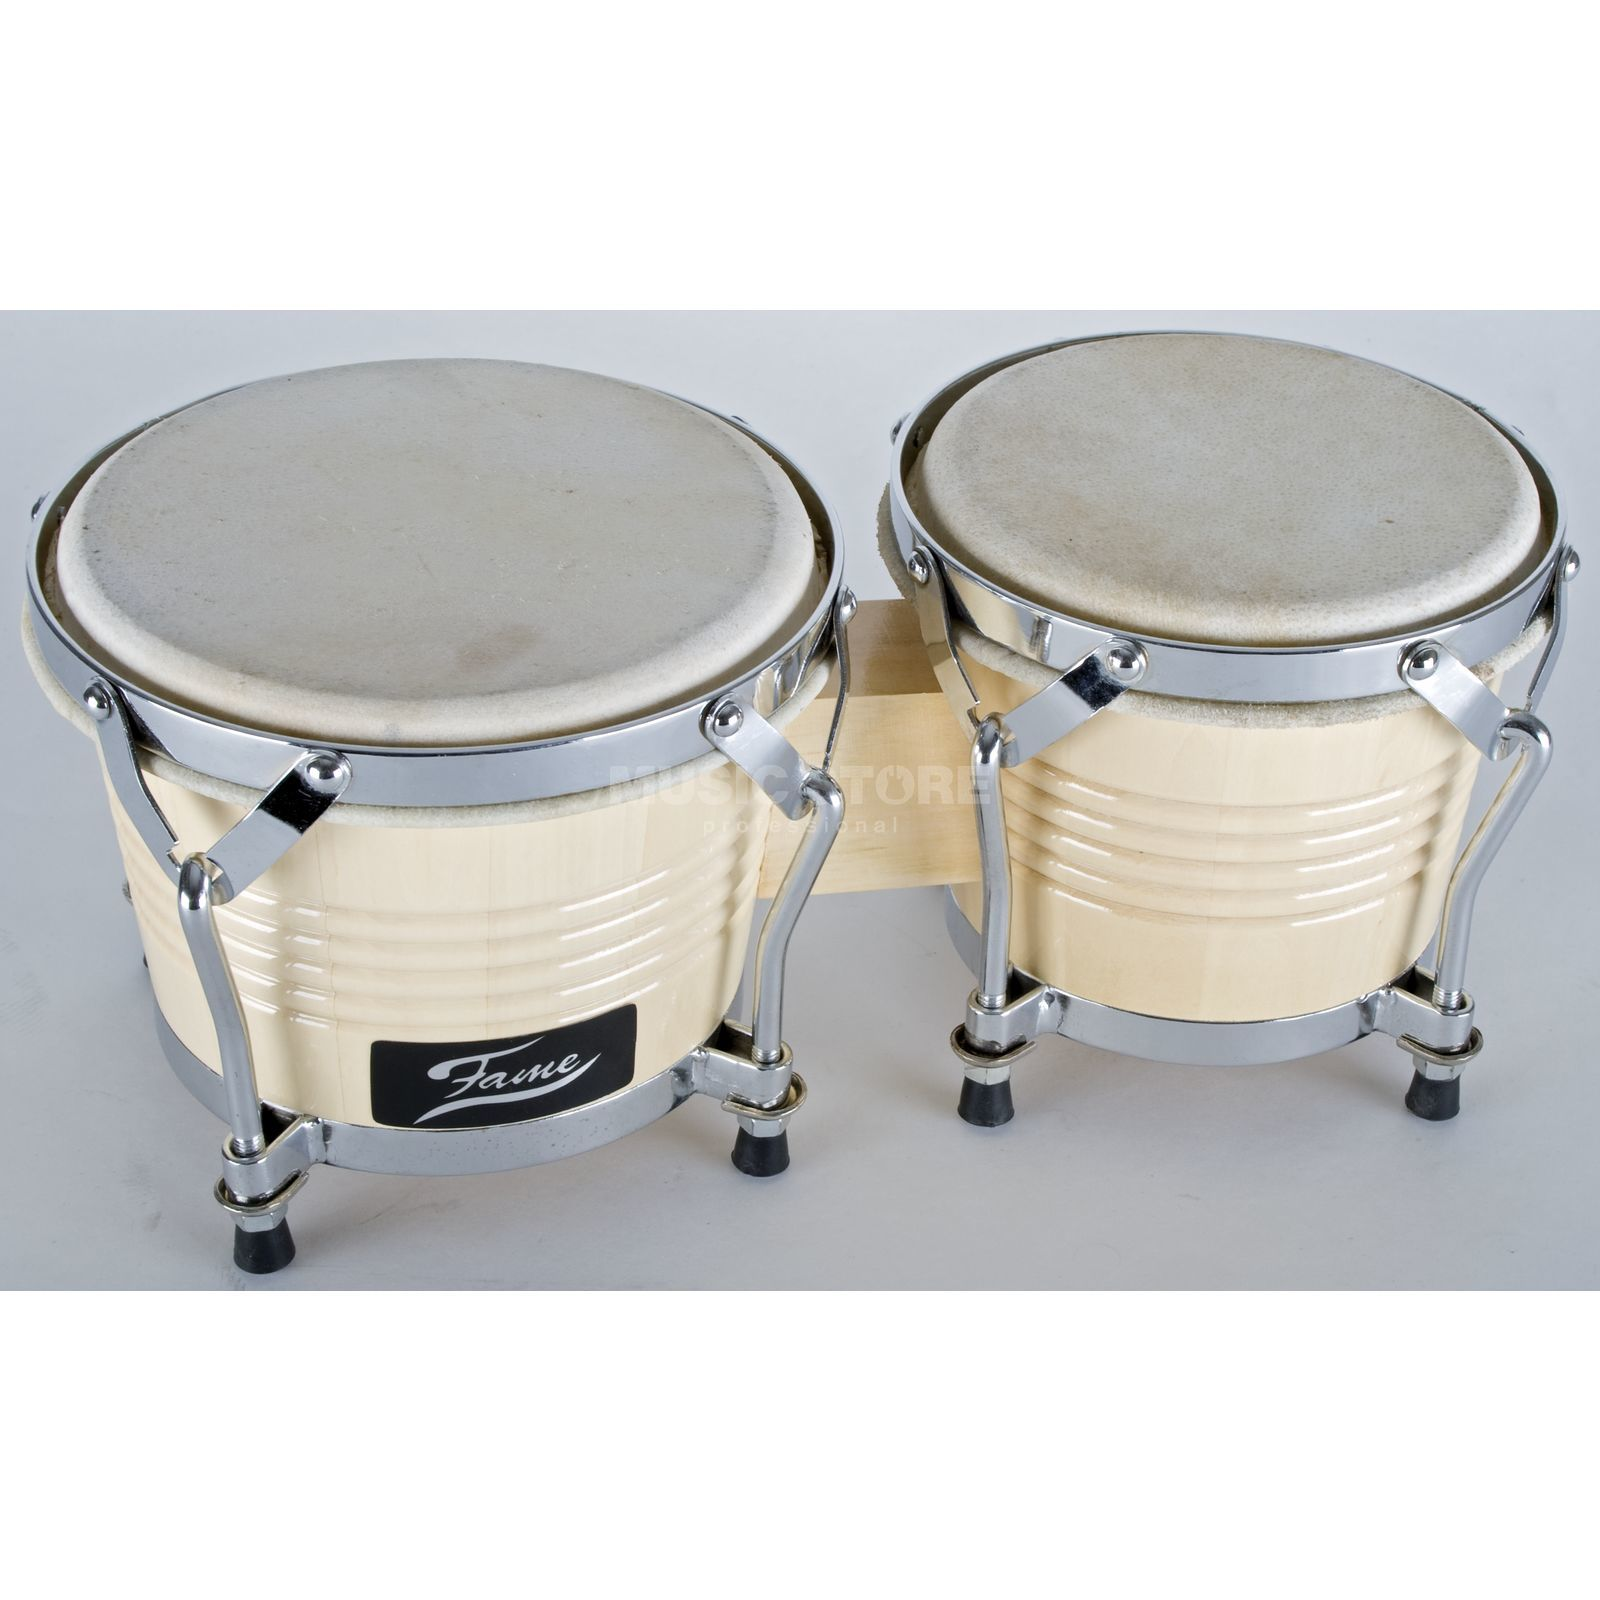 "Fame Bongo Beginner Set 6""+7"", Natural, Chrom Hardware Product Image"